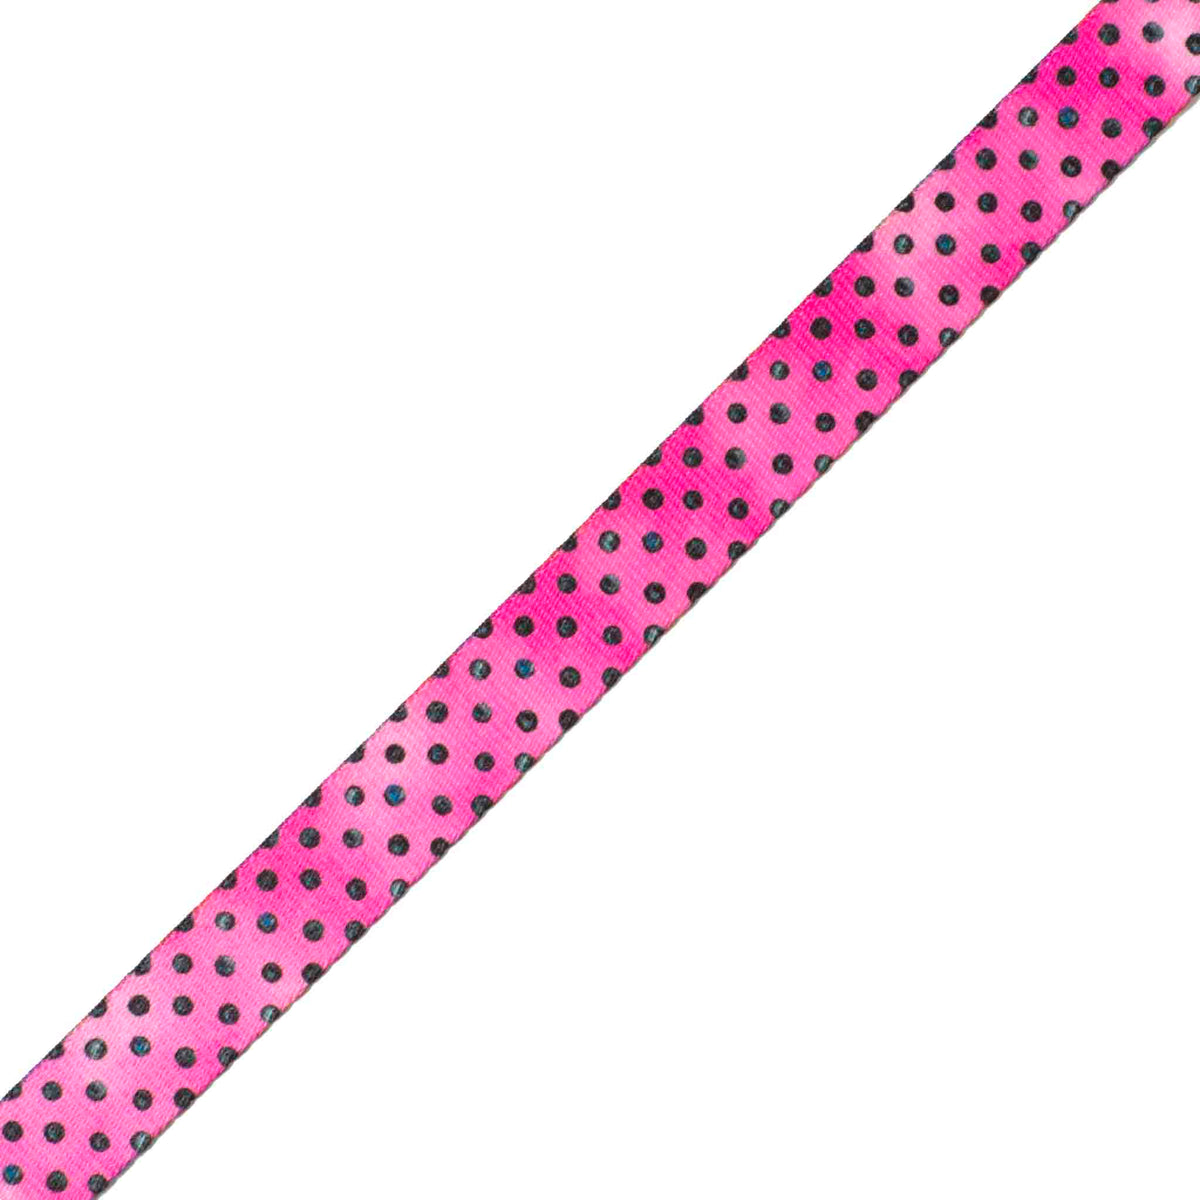 Cheerful Plastic Buckle Dog Collar | Raspberry Polka Dot Design